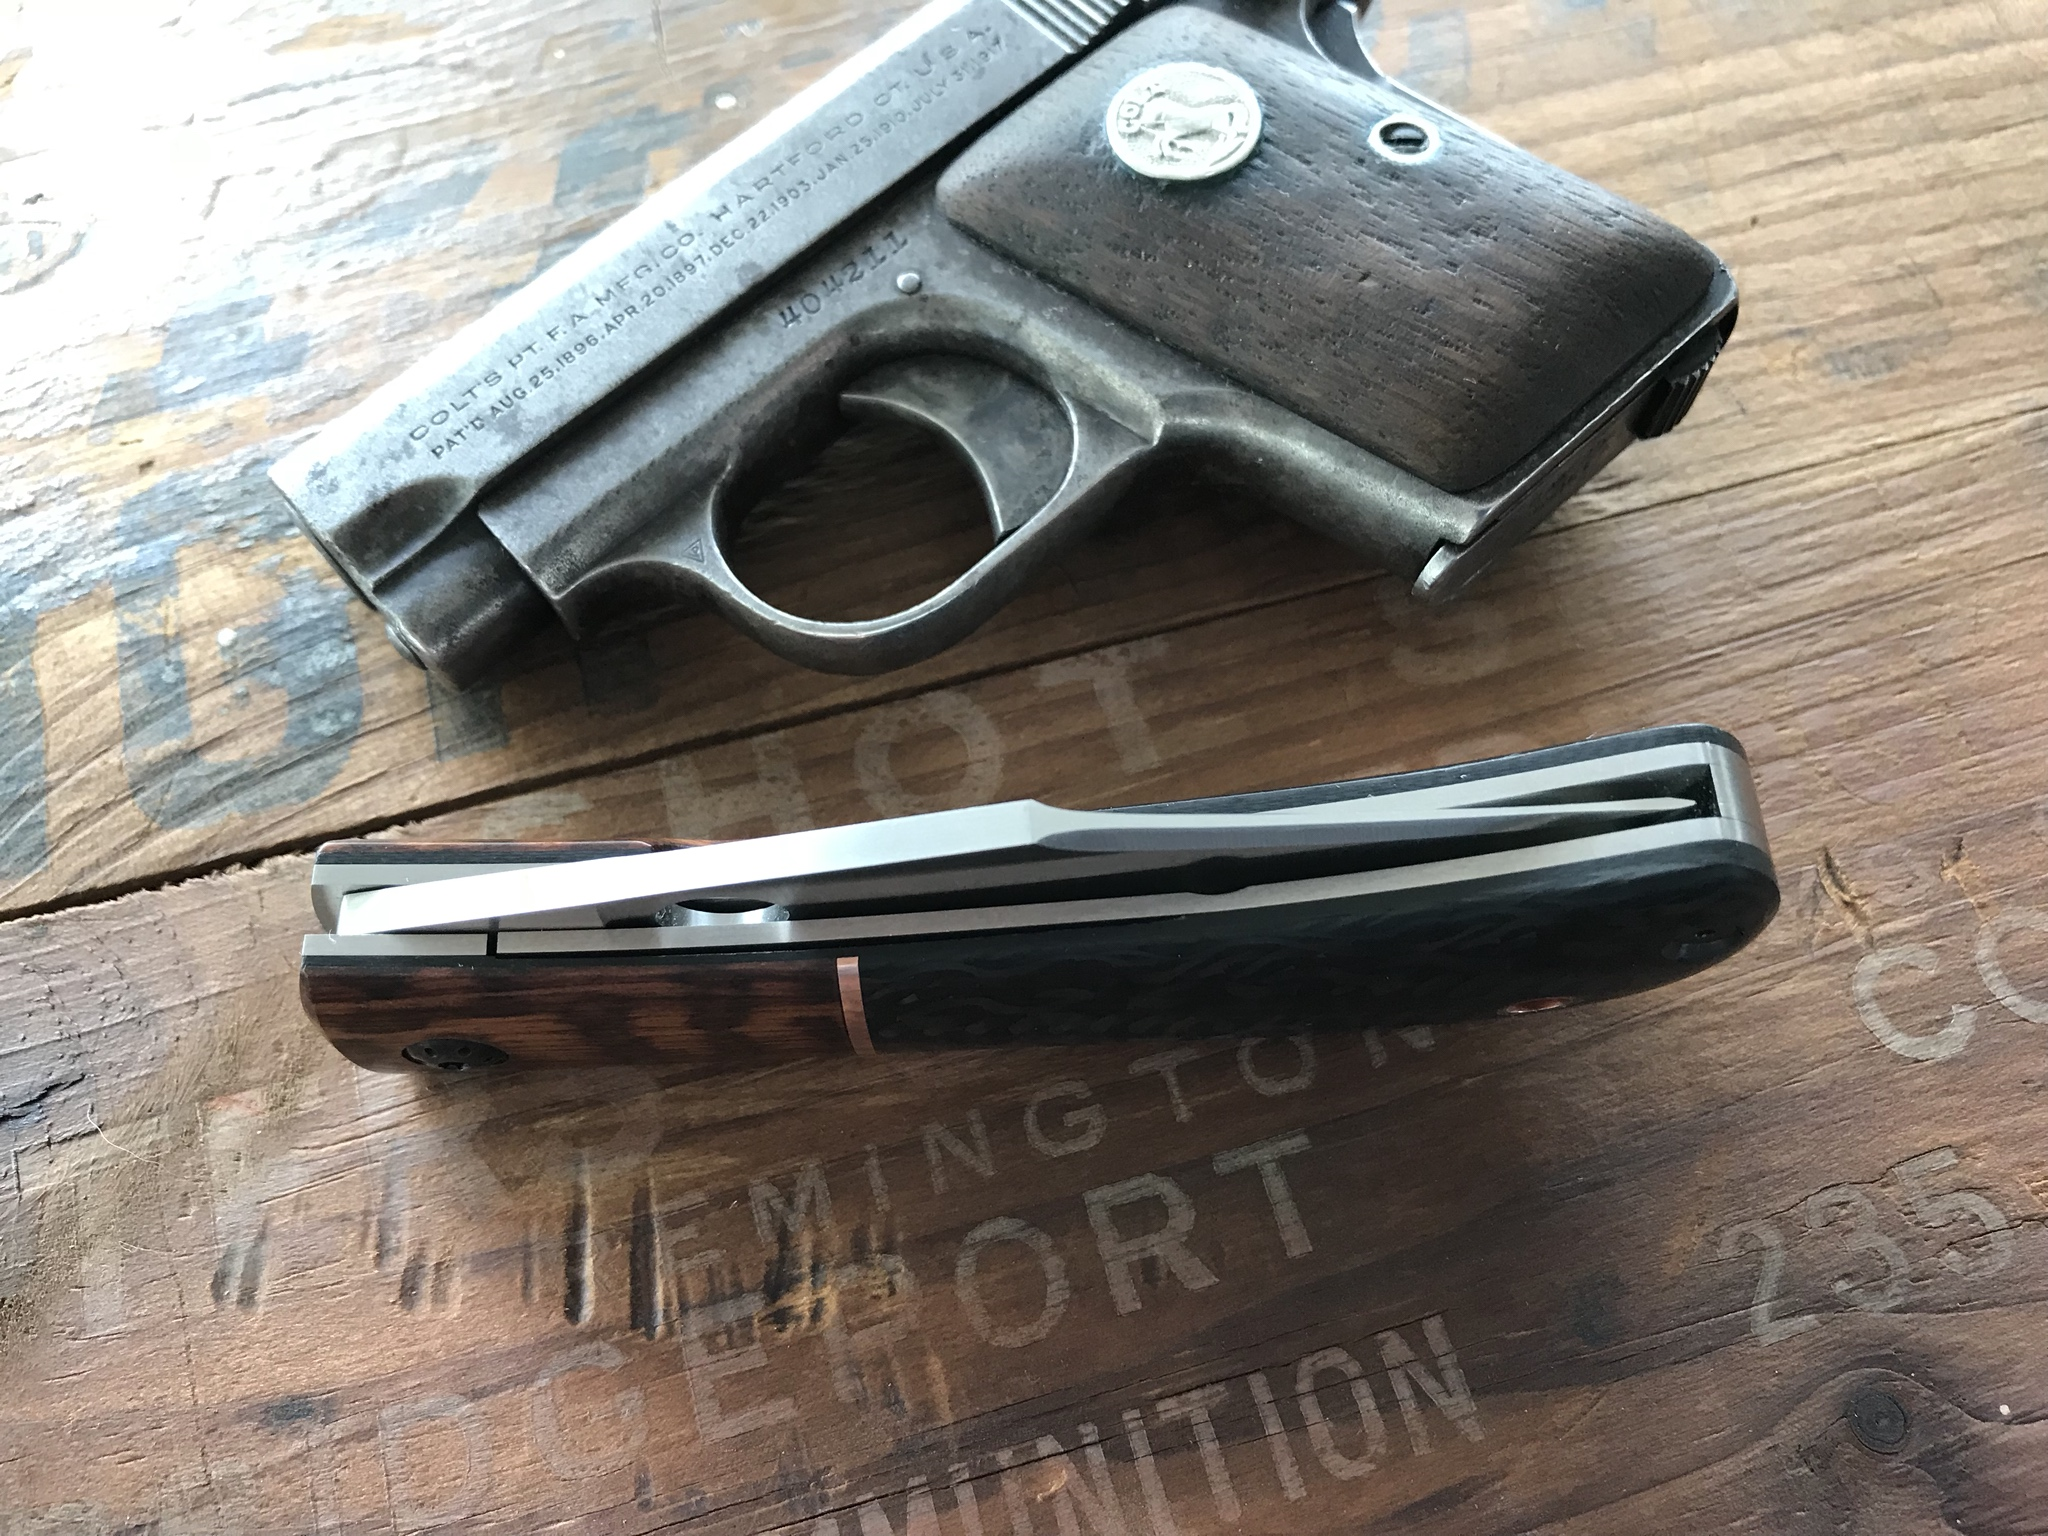 Lanny's Clip - Closed Presentation Pistol II